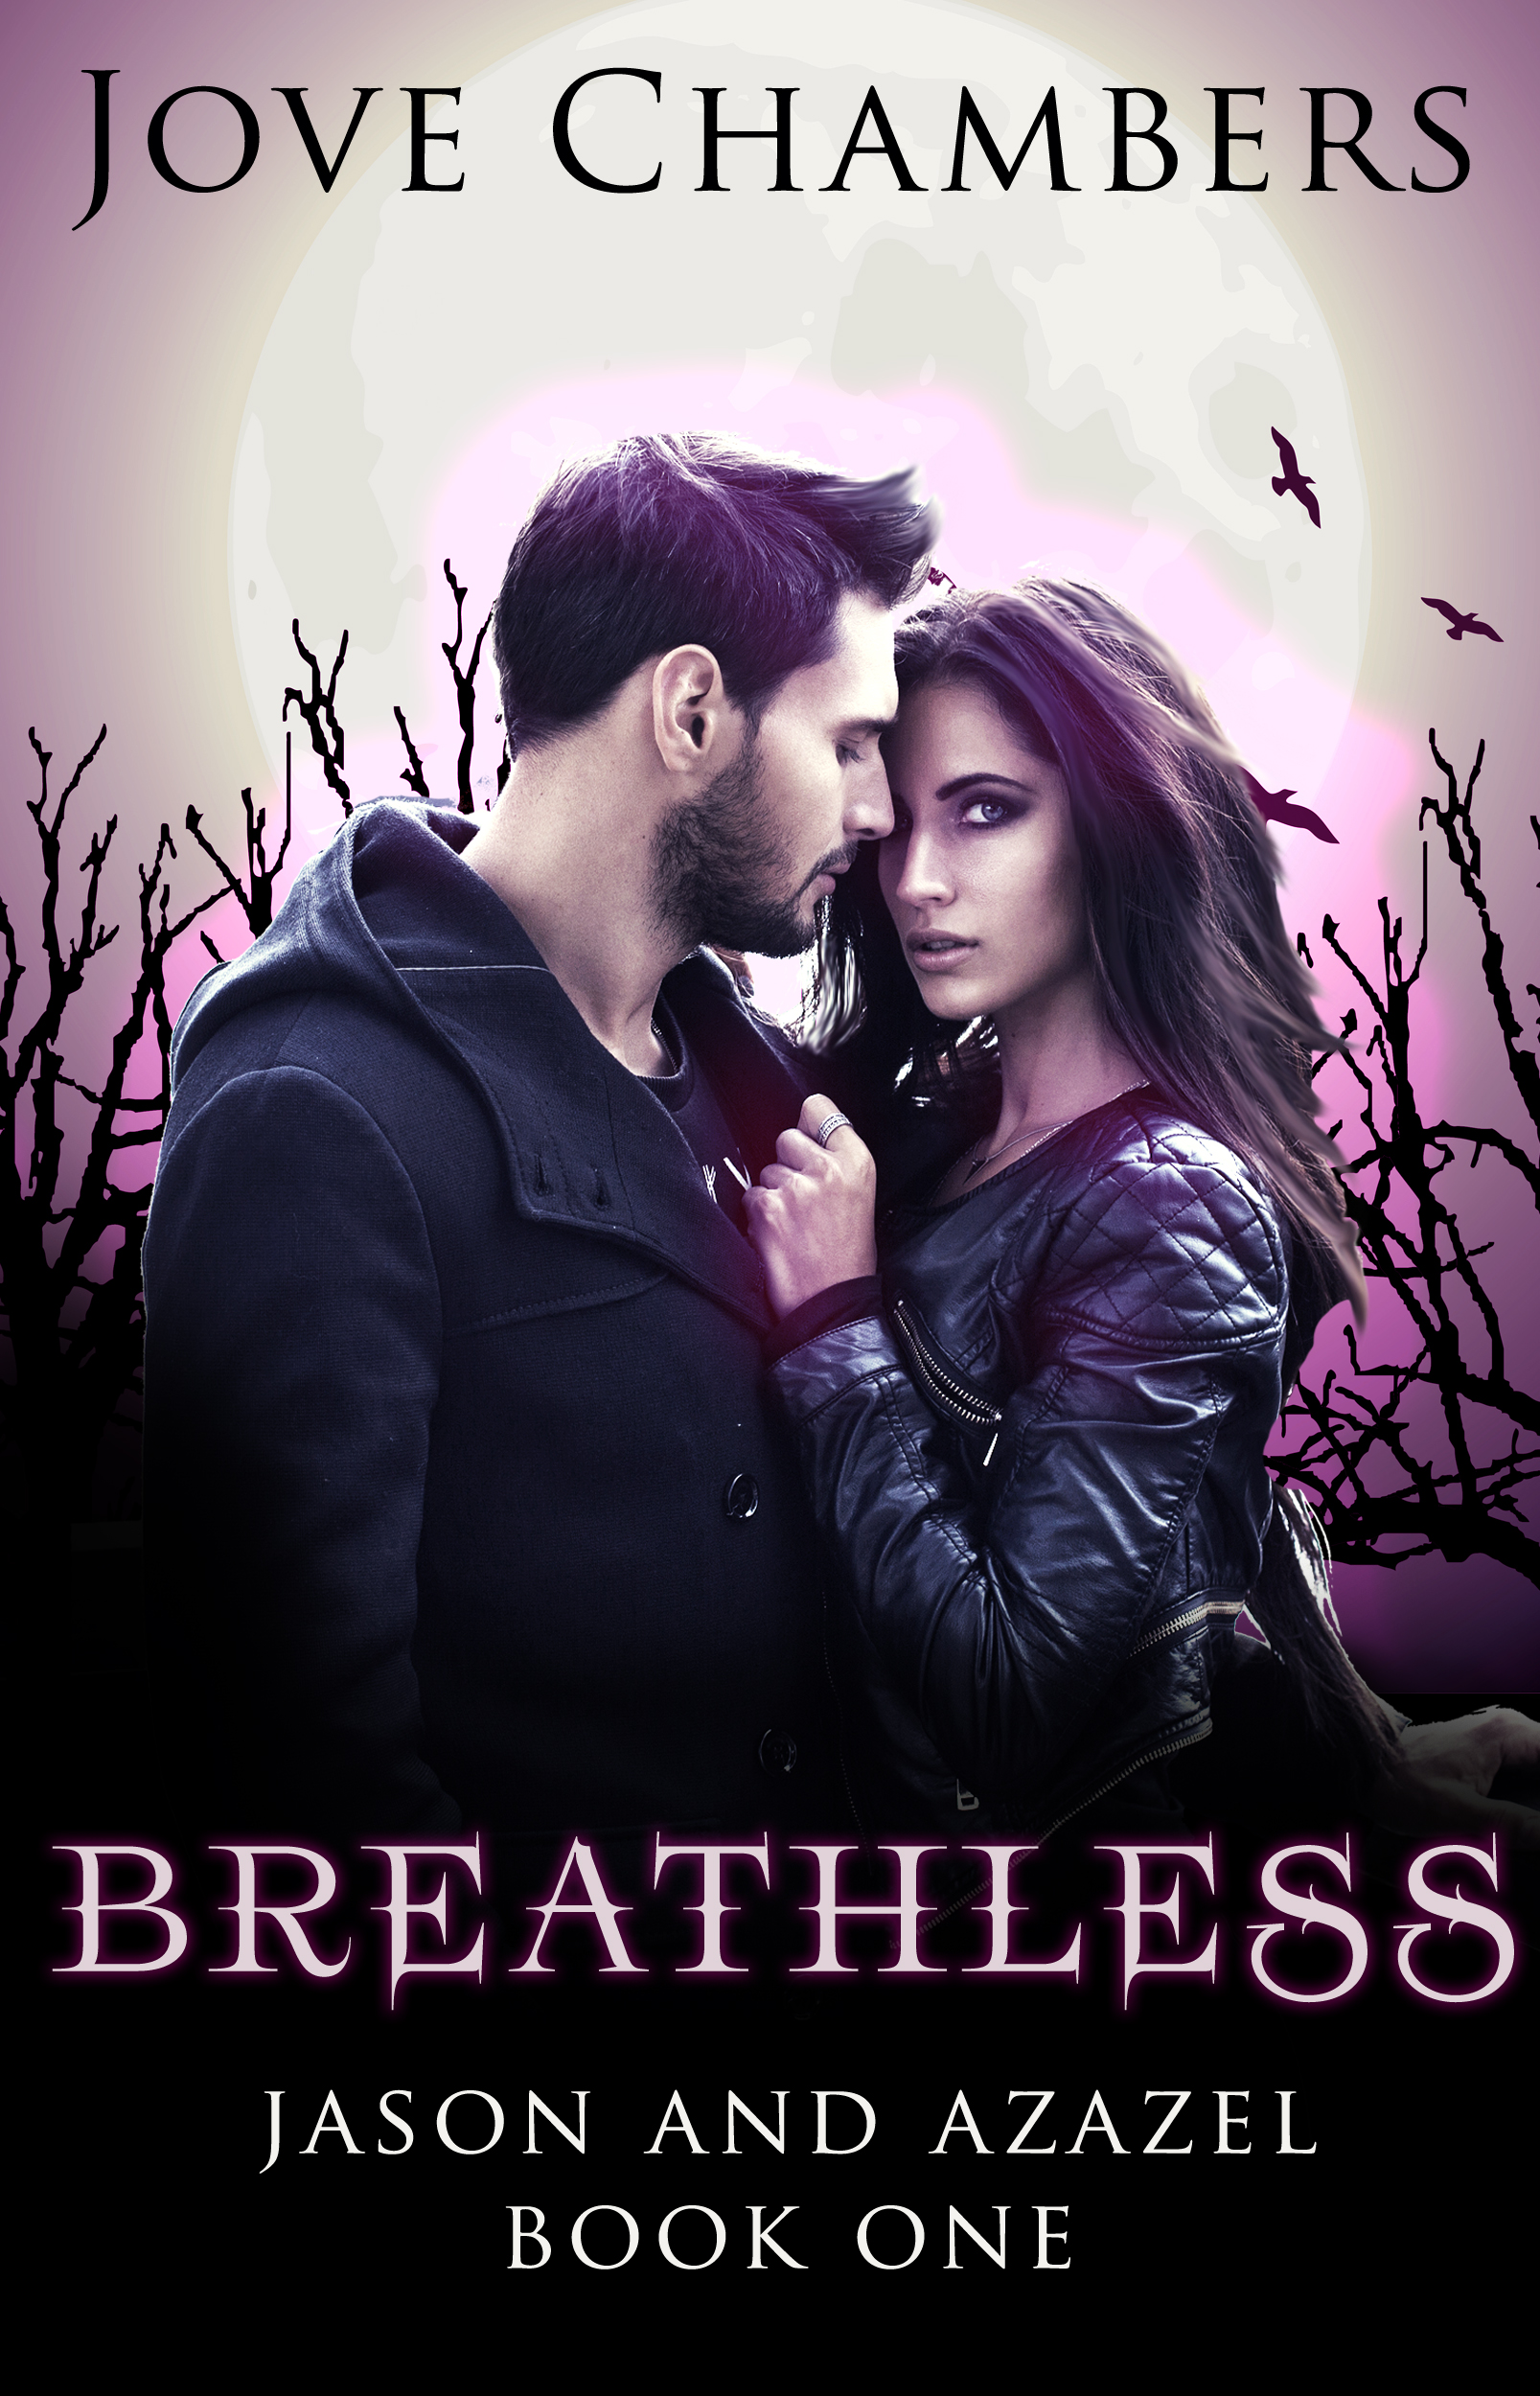 Smashwords – Breathless – a book by Jove Chambers